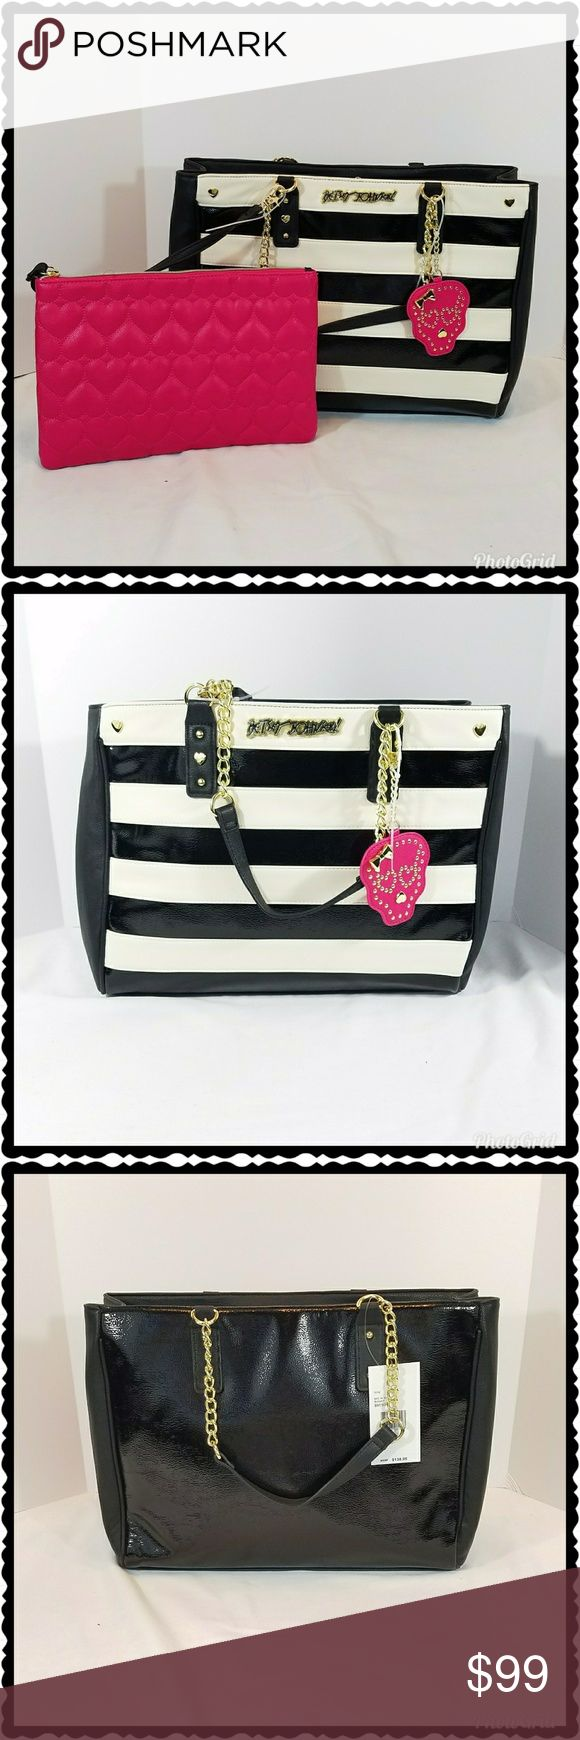 "Betsey Johnson striped shoulder bag / purse /tote This black and white tote bag is absolutely stunning. Also included is a pink clutch that comes with a removable strap. There is an adorable pink skull mirror keychain that is removable. The bag is fully lined in the iconic floral Betsey Johnson print. There are three pockets on the inside. Gold hardware, including the Betsey Johnson plaque on the front. Approximate measurements are 16"" x 12"" x 6"" with a 9.5"" shoulder drop. There are so many…"